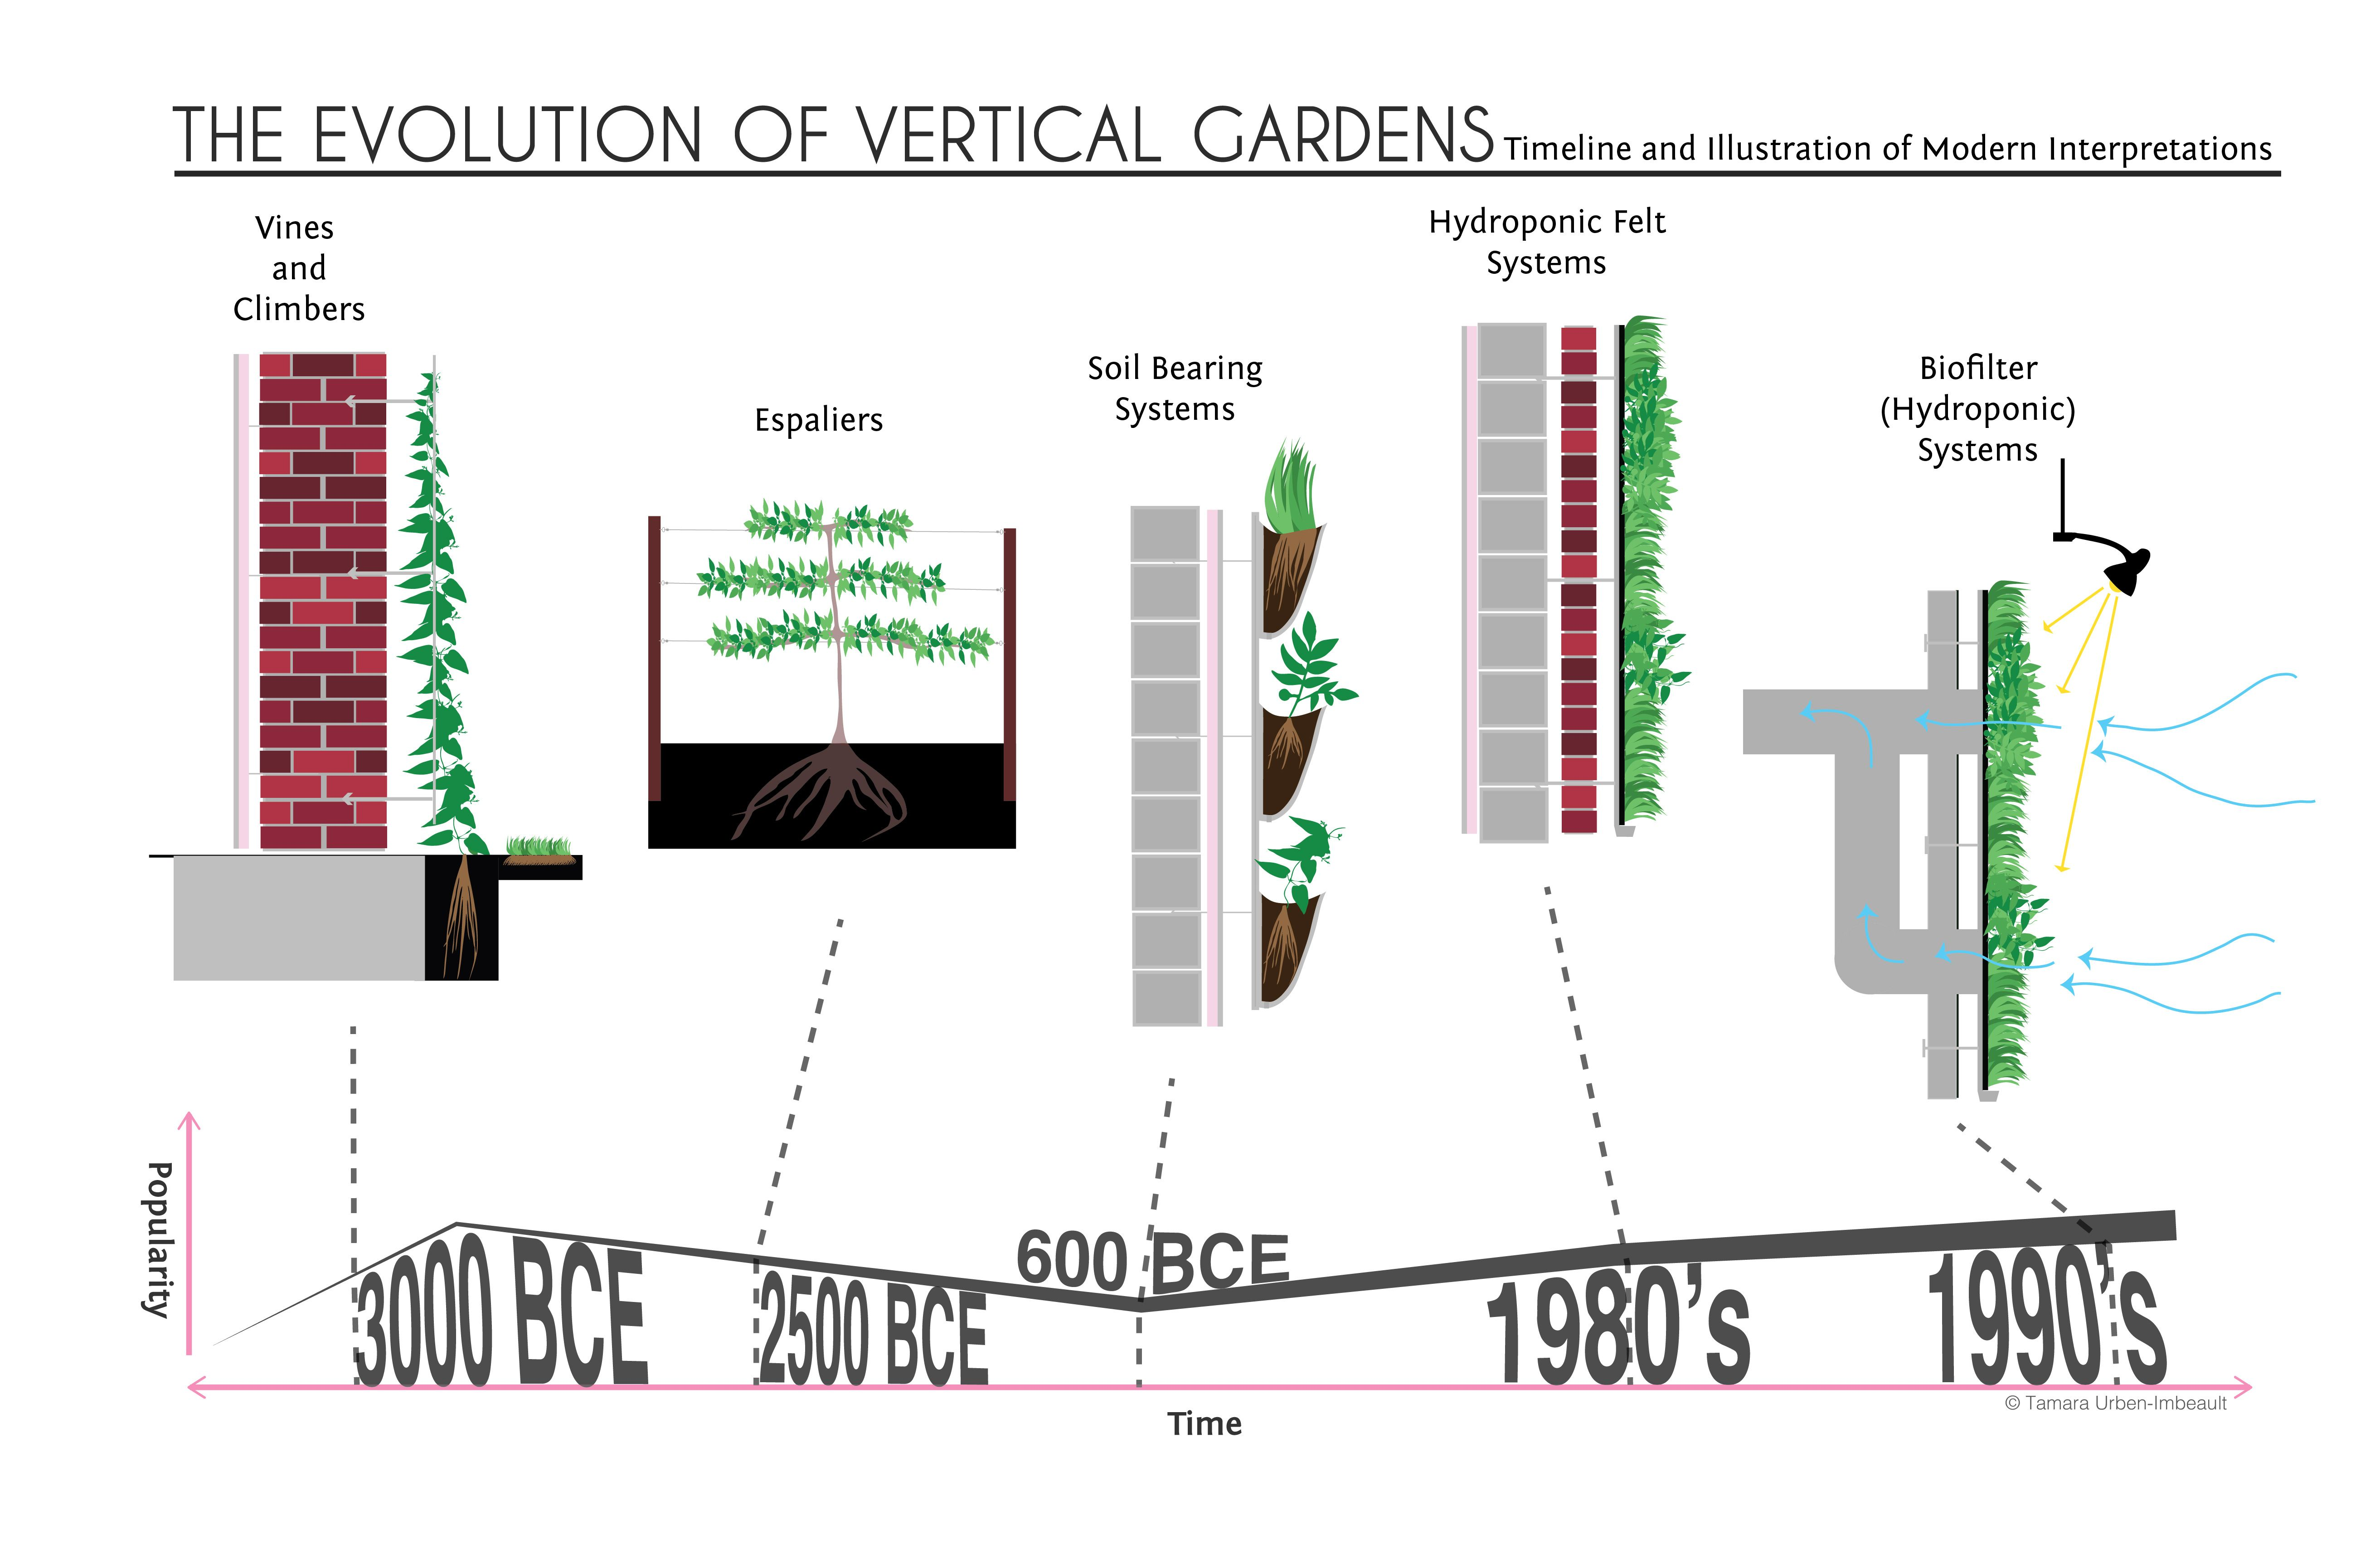 a history of vertical gardens from simple vines to hydroponic systems land8 vertical gardens. Black Bedroom Furniture Sets. Home Design Ideas